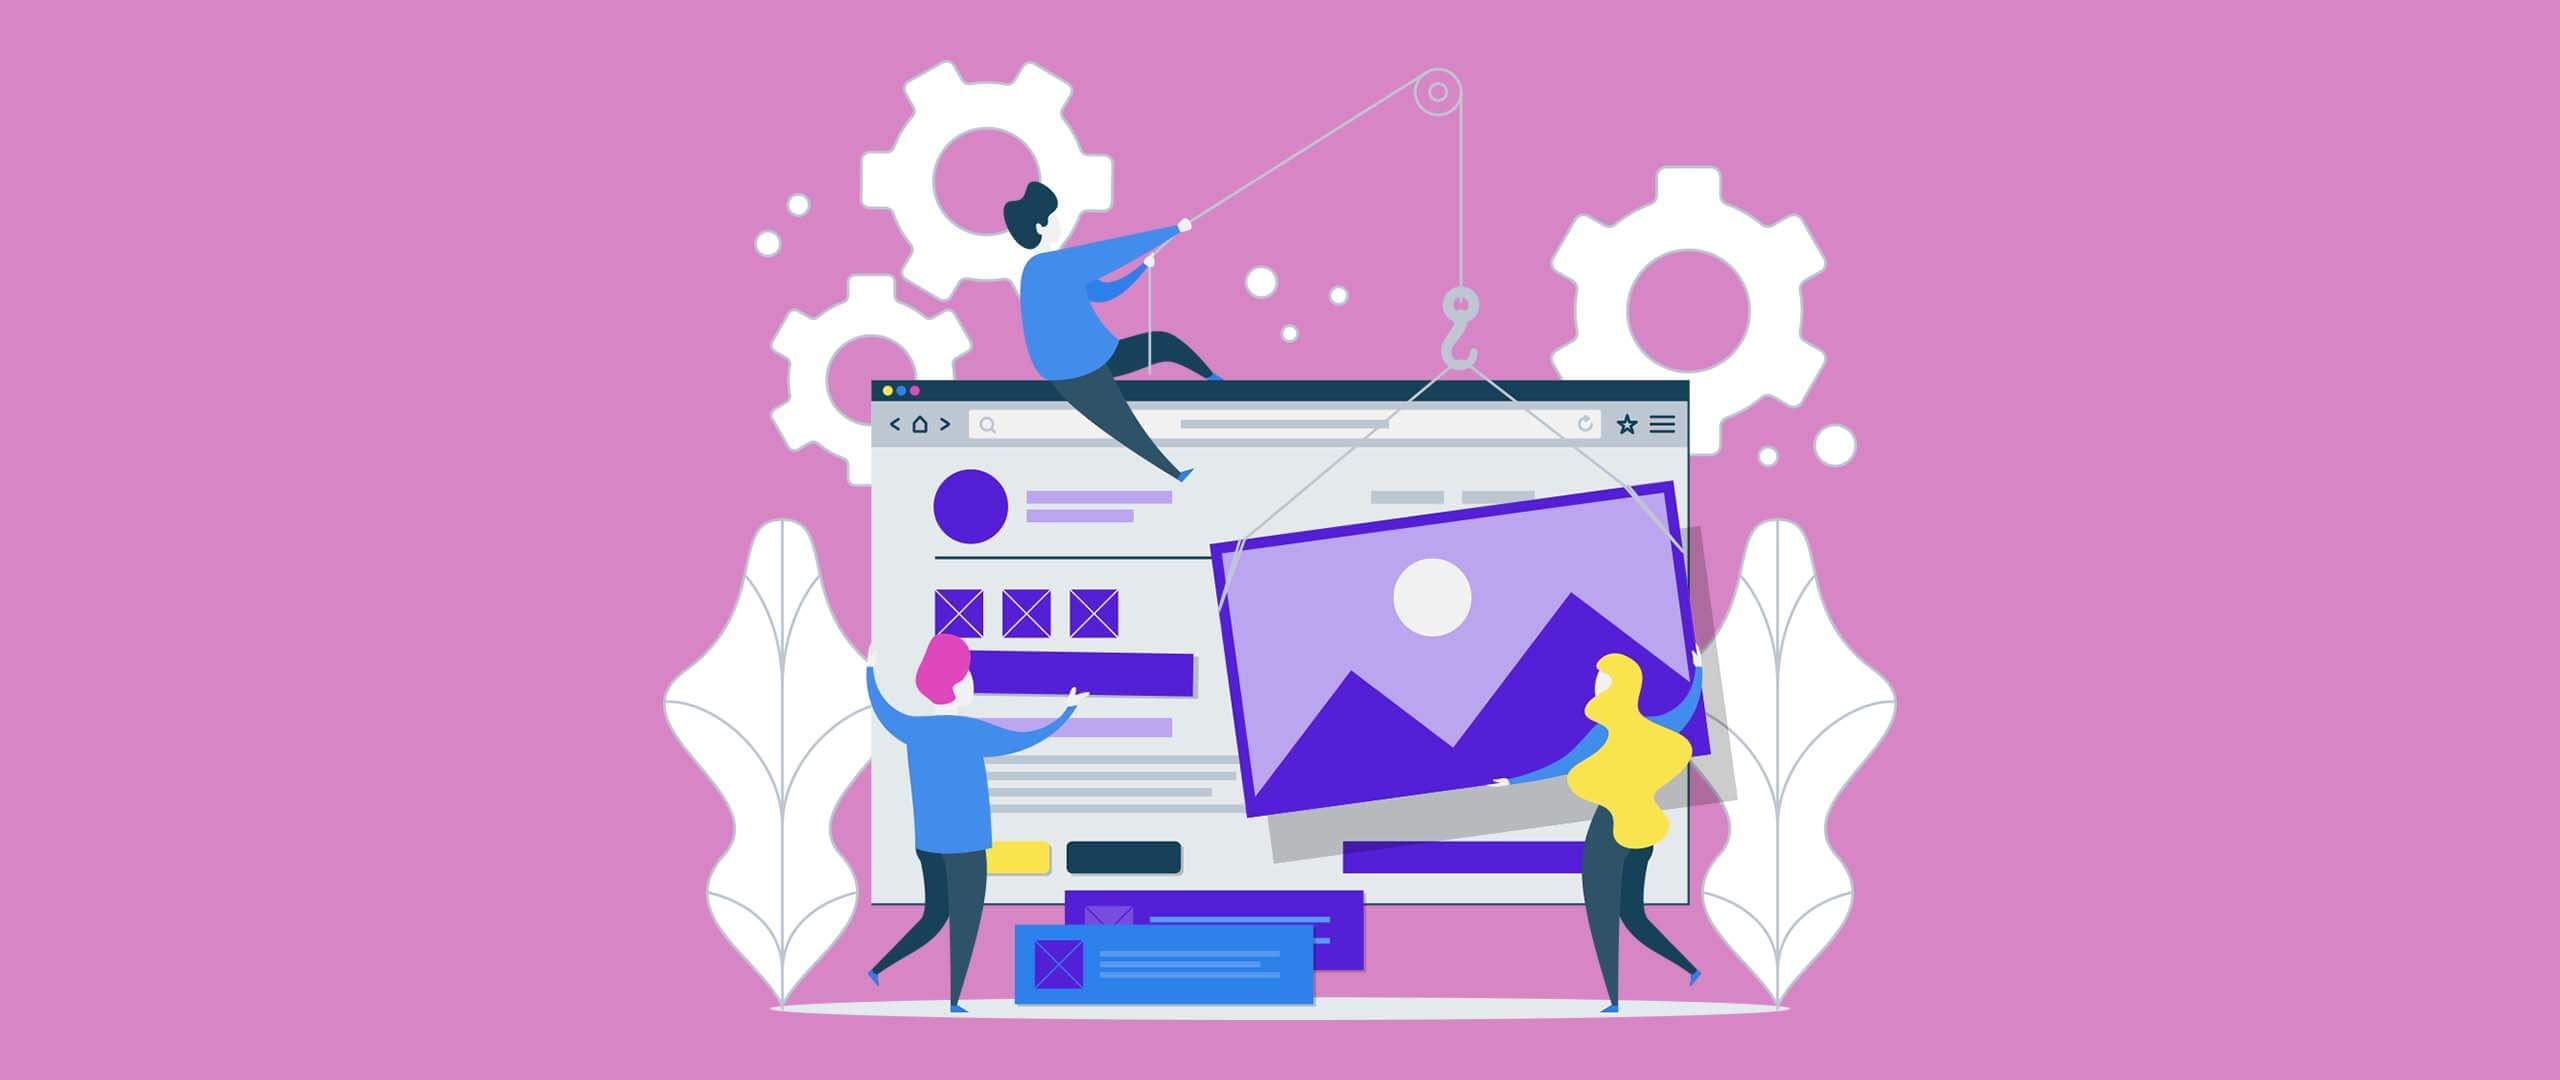 A Quick Guide On Website Architecture and Design